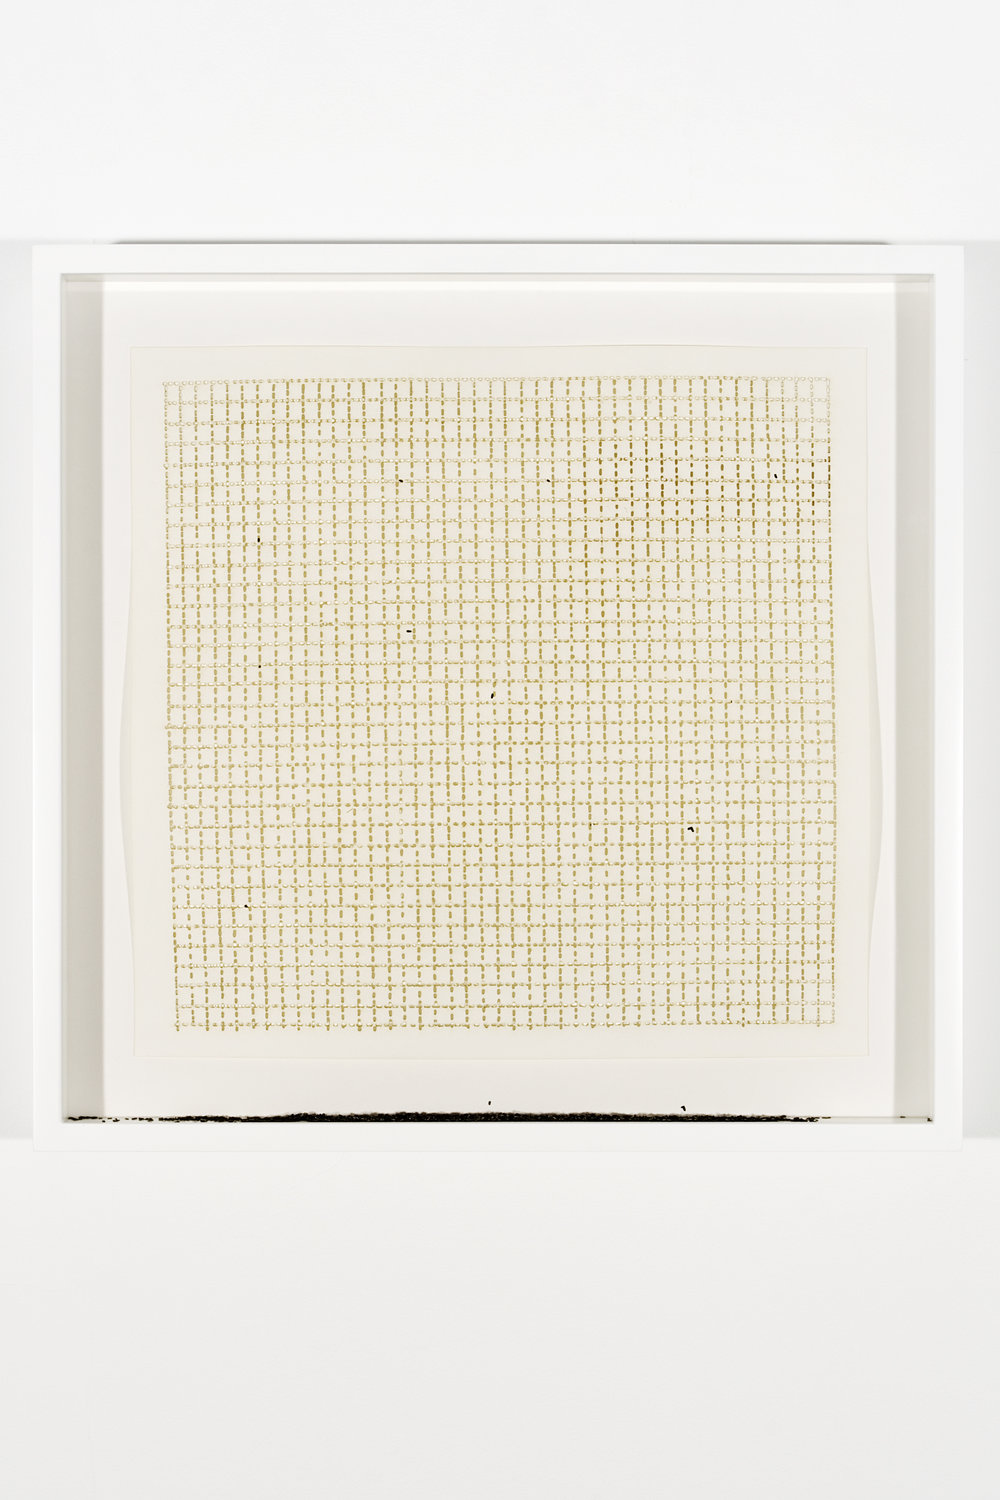 """Collapsed Drawing: """"Untitled"""" (Agnes Martin), 2007 laser-cut paper and laser-cut archival digital print mounted on museum board 49 x 50,3 cm - 19 1/4 x 19 3/4 inches (framed)"""